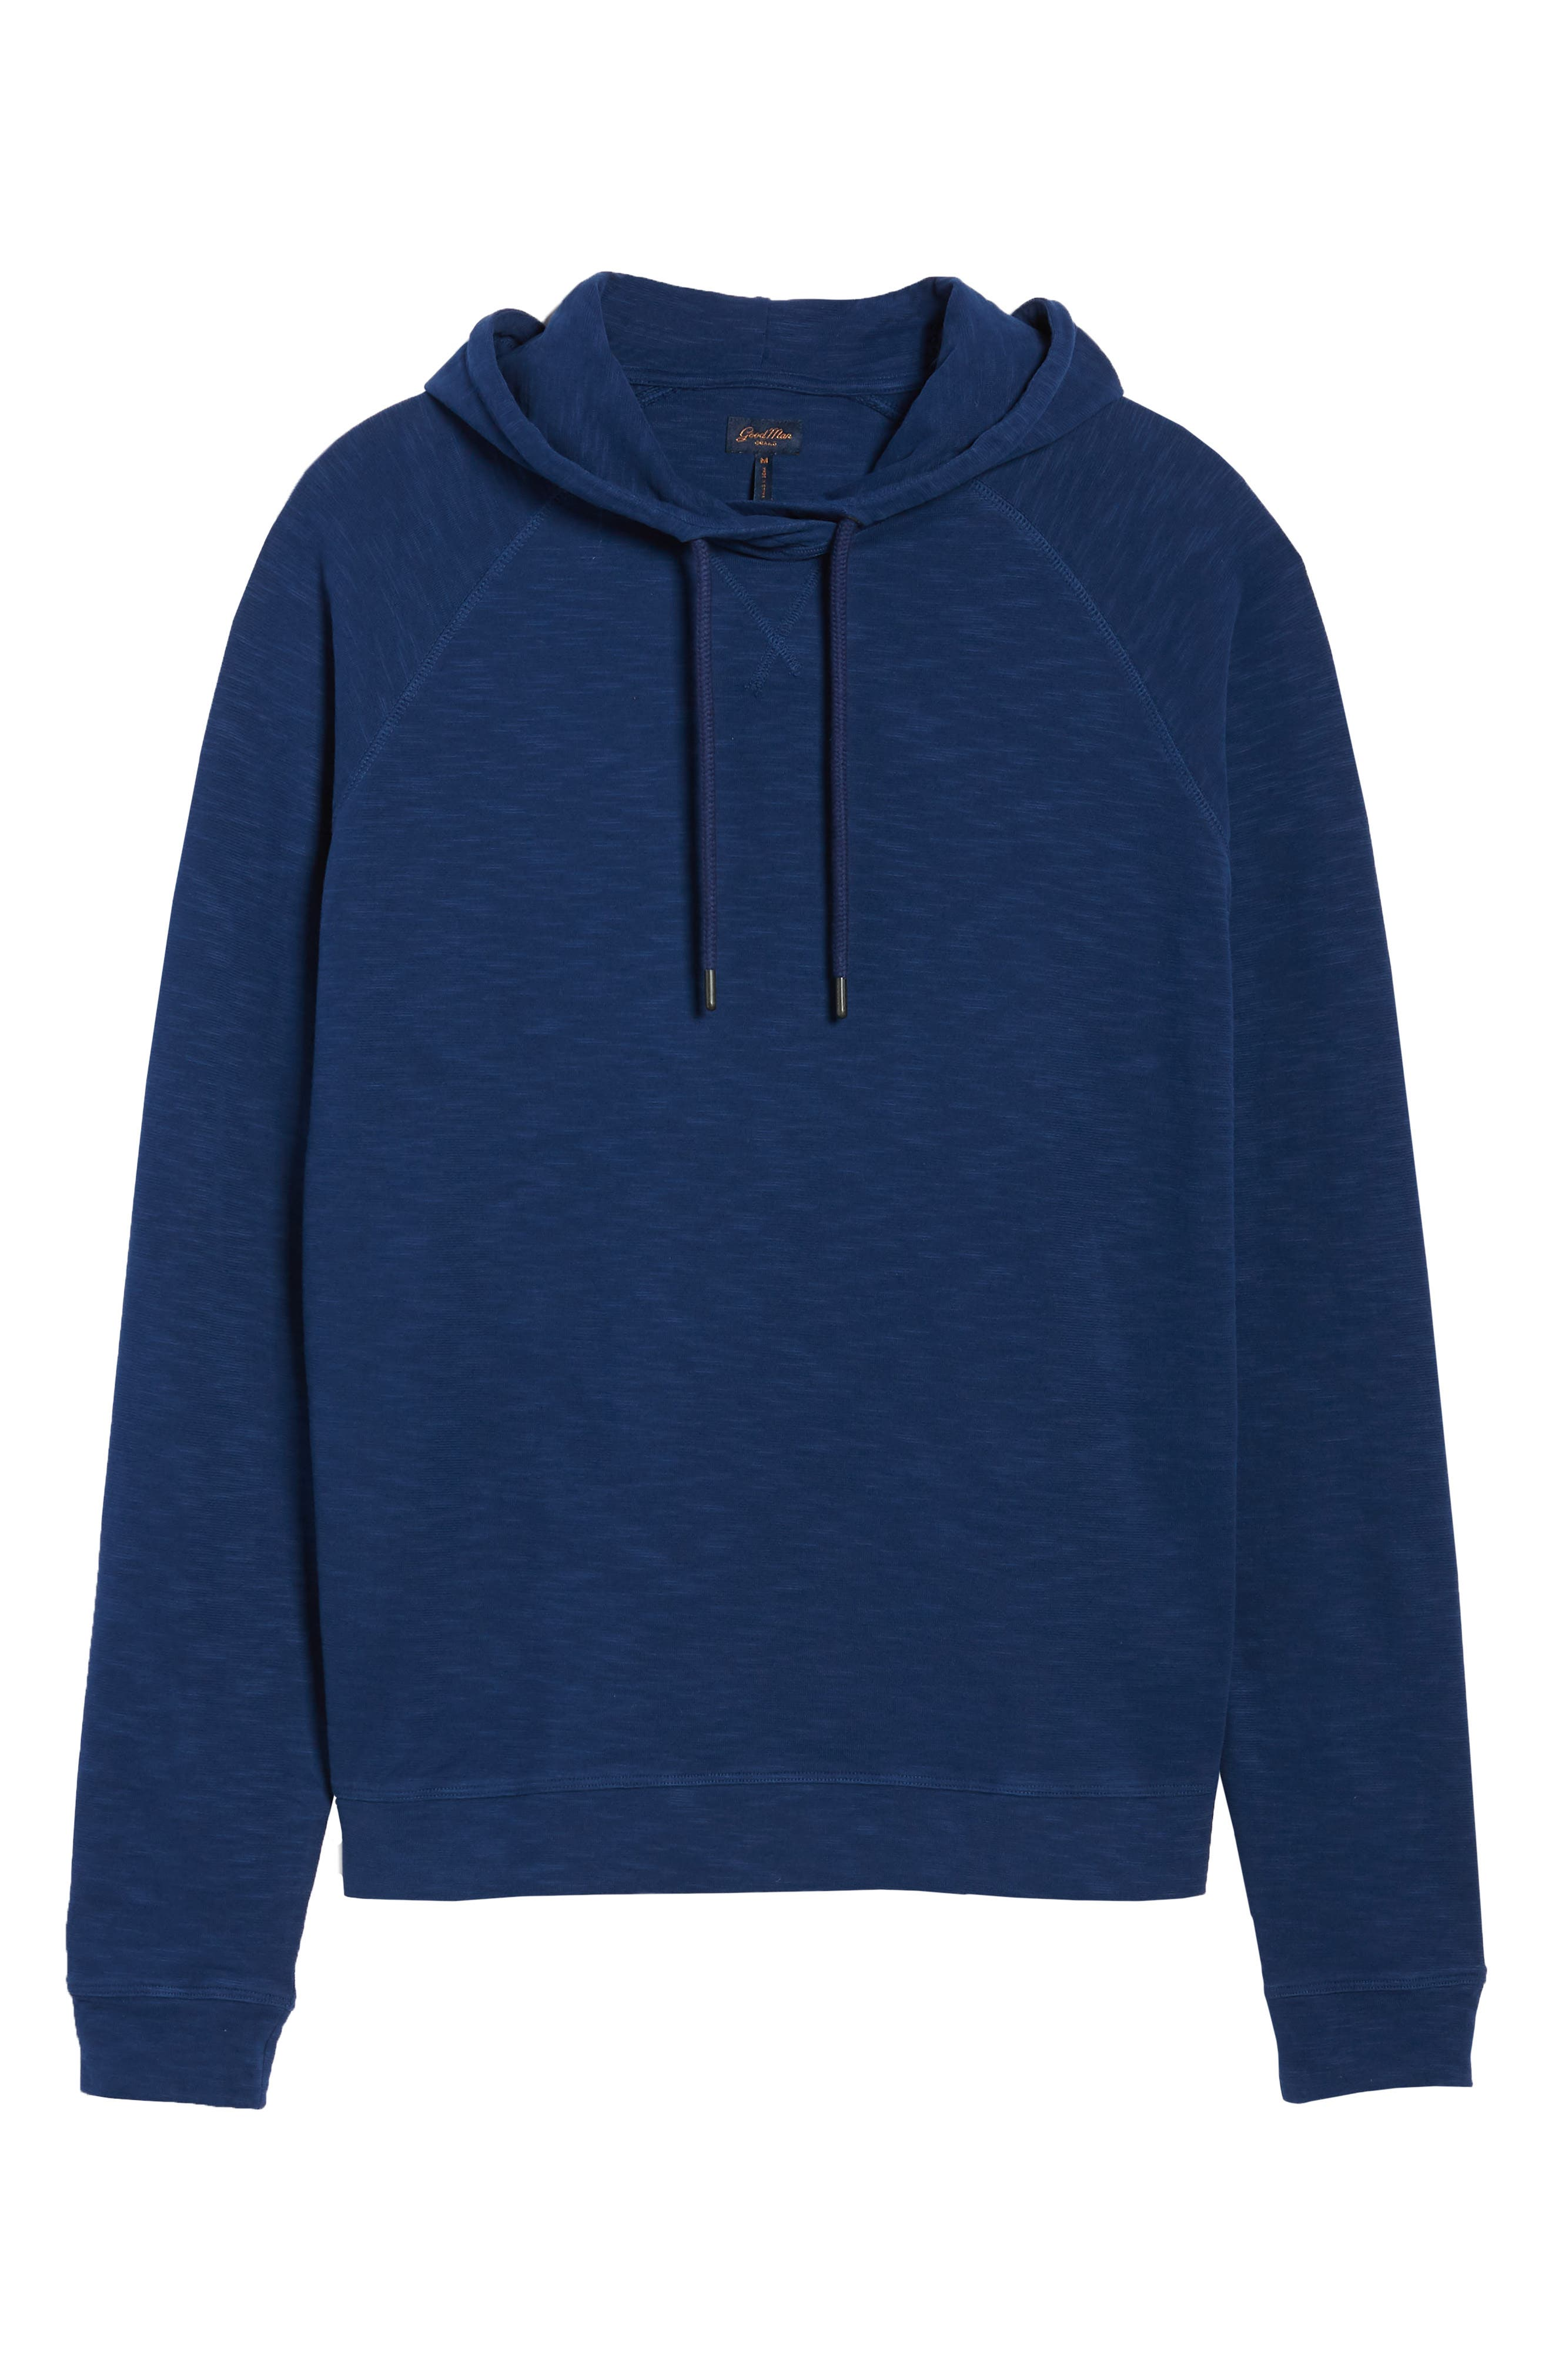 Trim Fit Pullover Hoodie,                             Alternate thumbnail 6, color,                             Blue